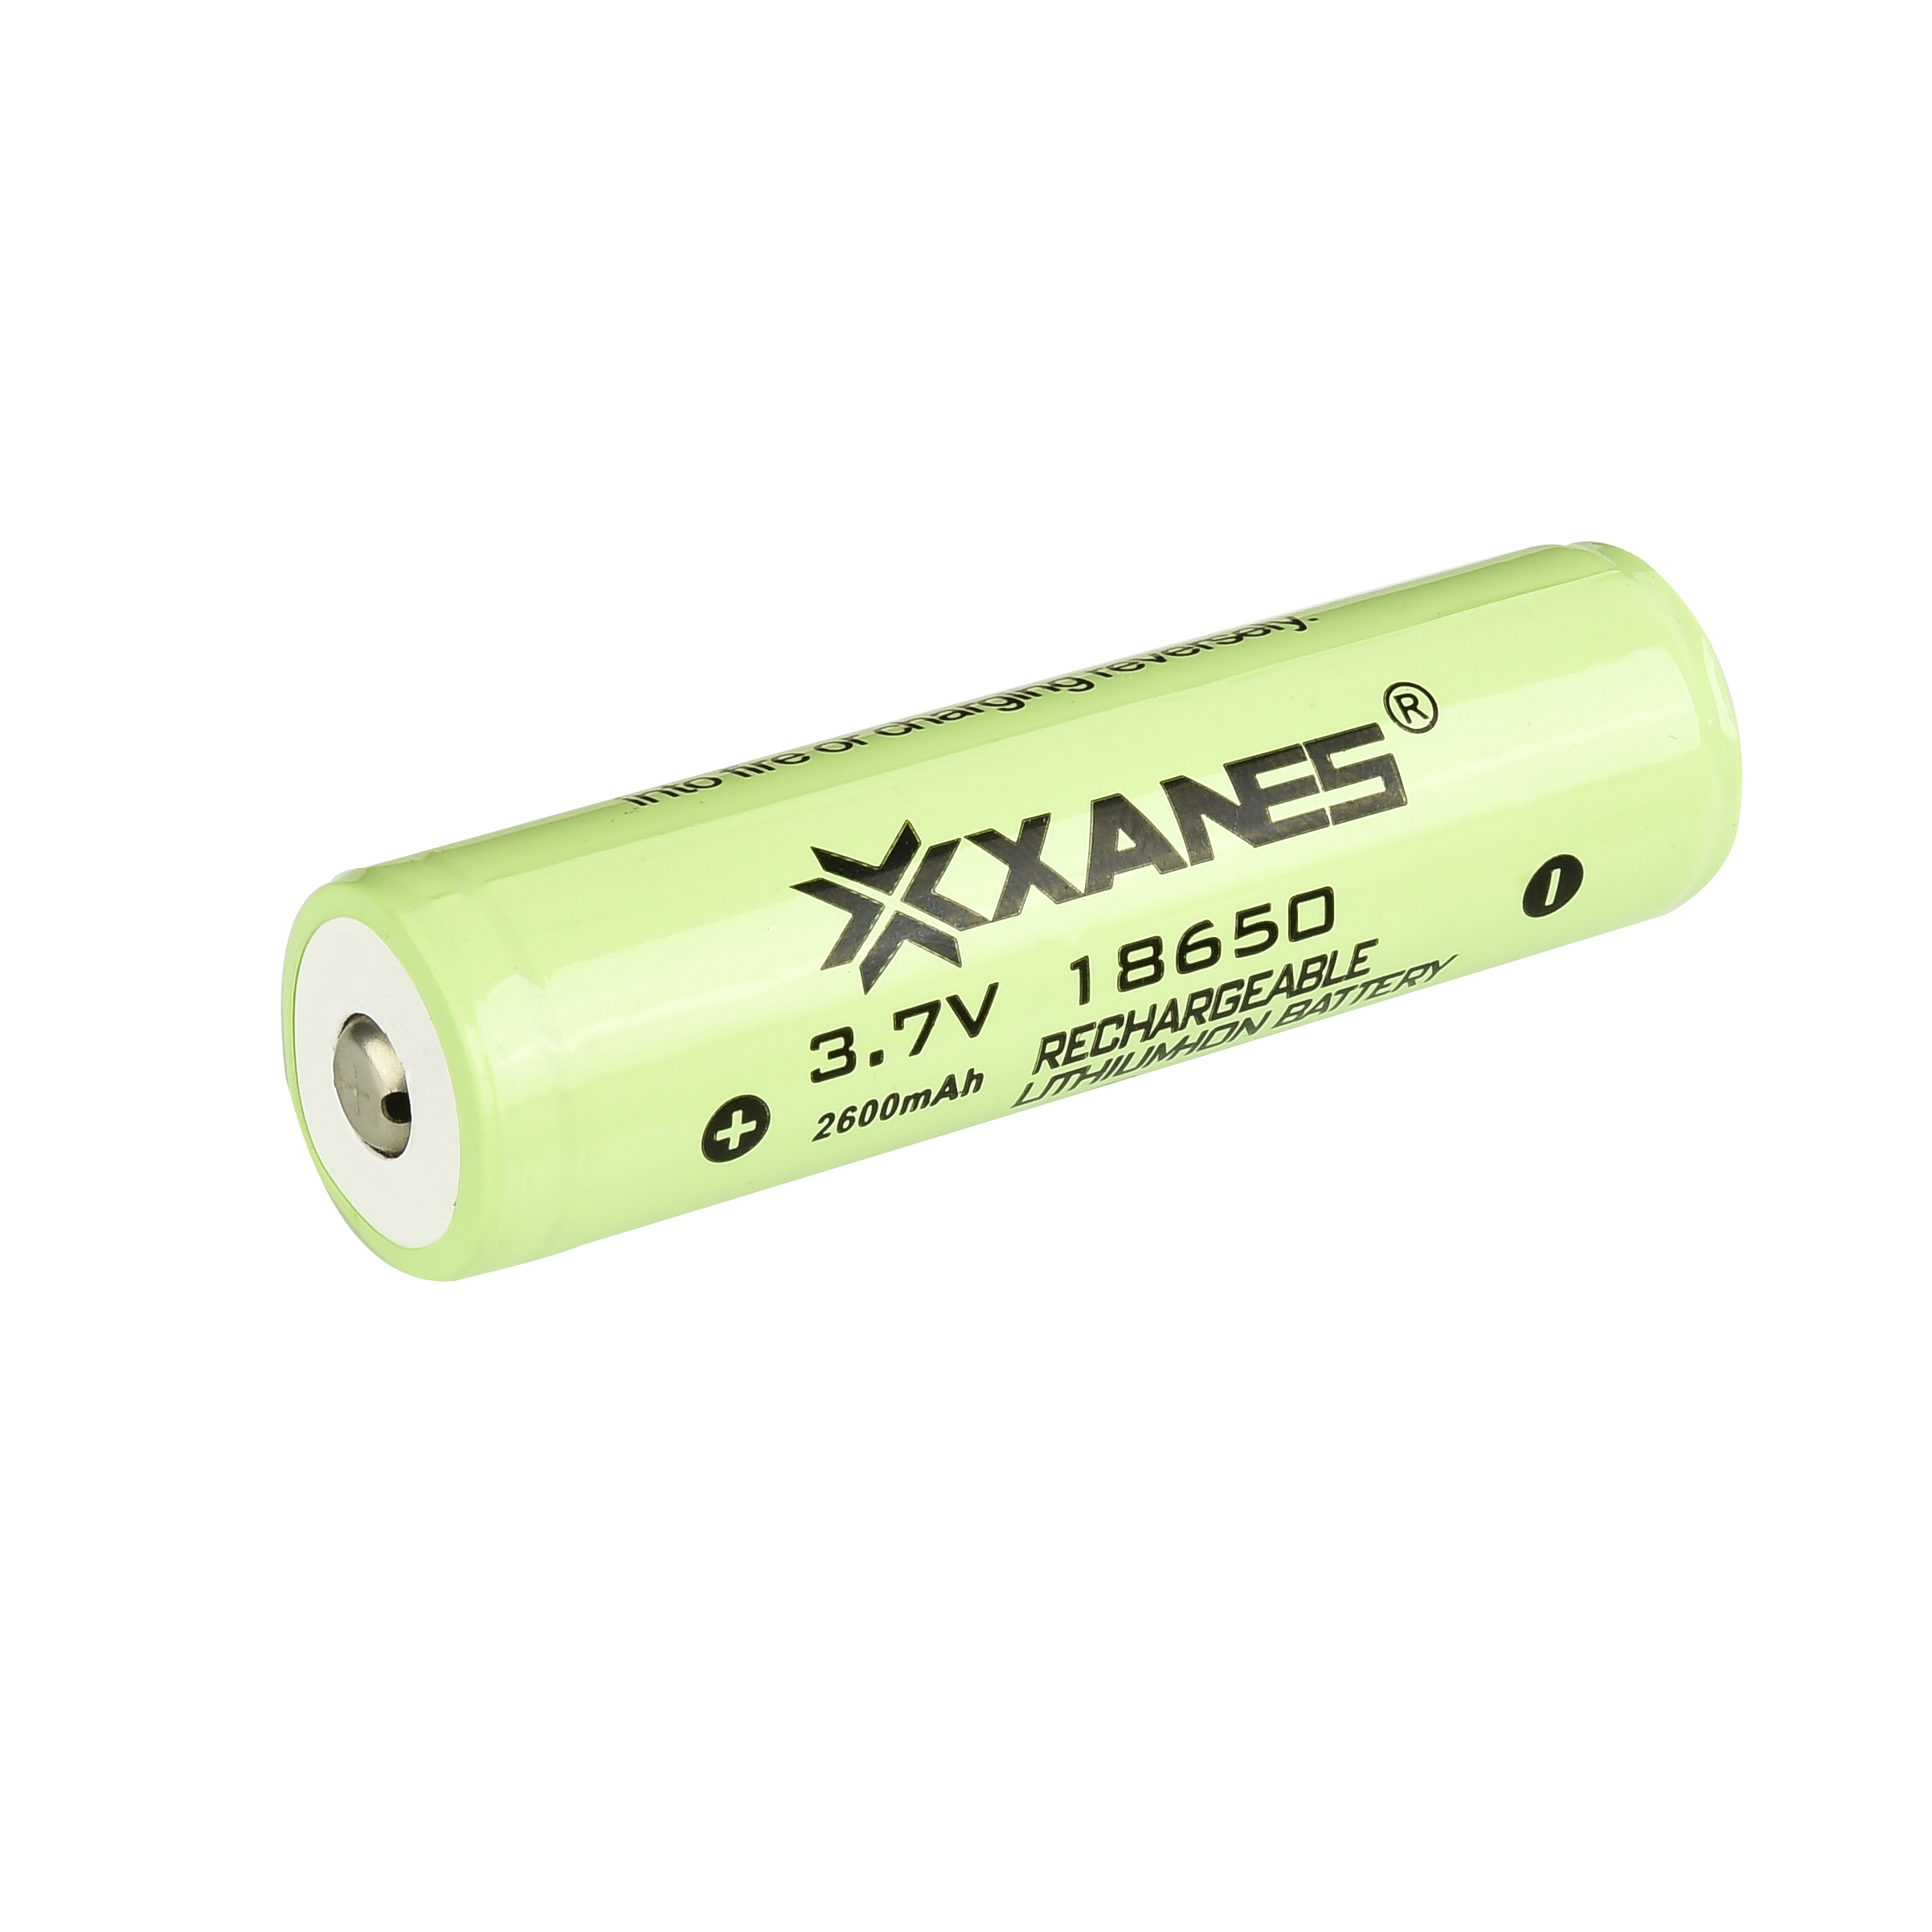 4pcs XANES 3.7V 2600mAh Protected Rechargeable 18650 Li-ion Battery